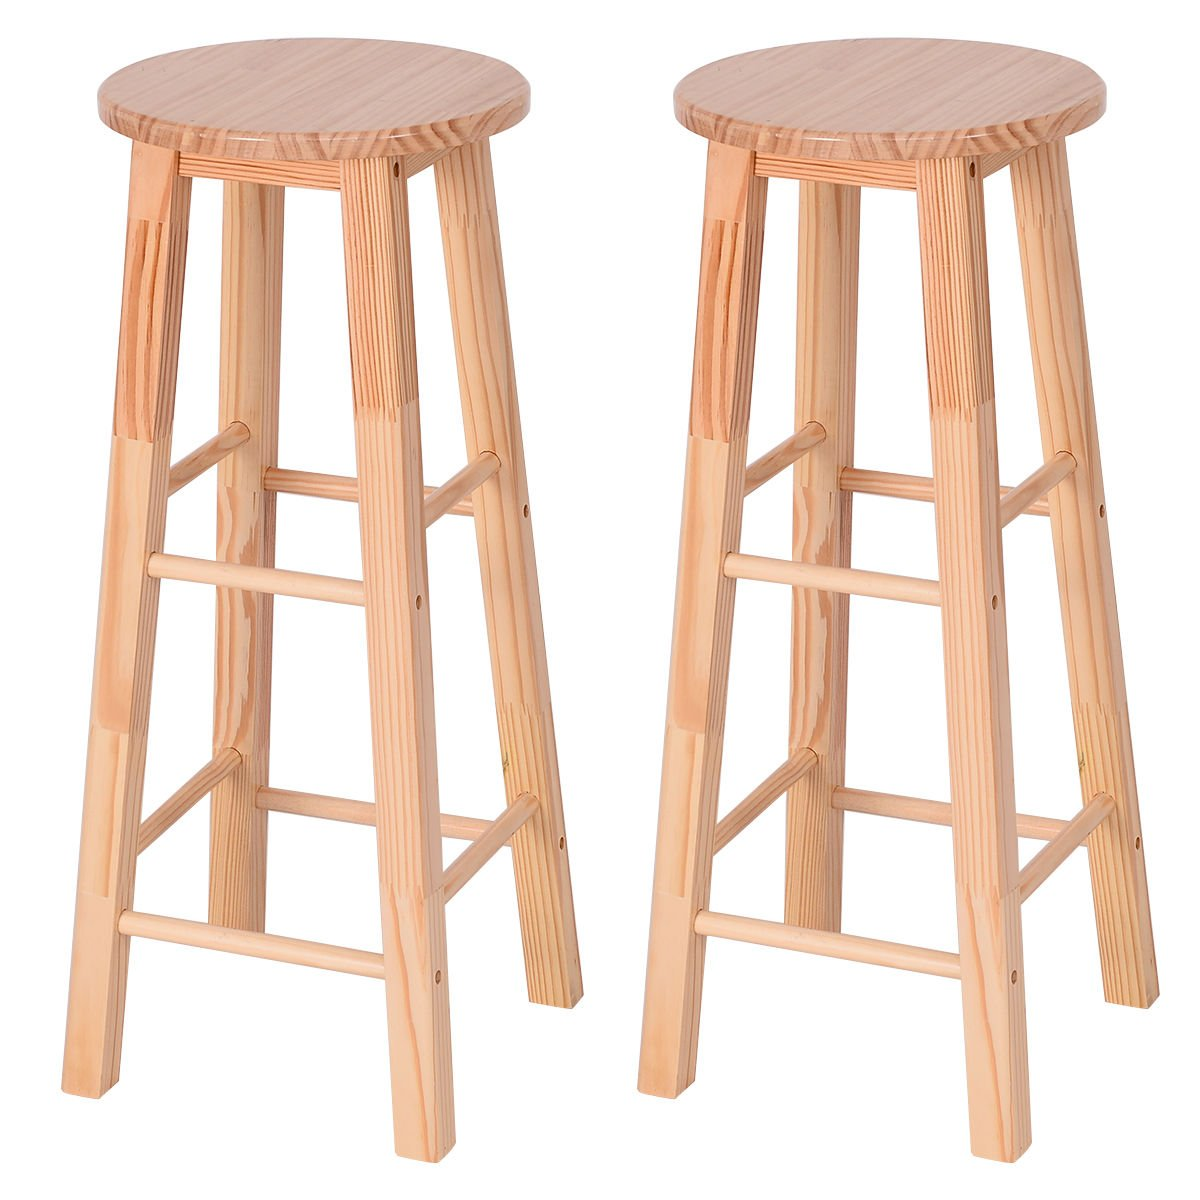 Costway 29-Inch Pine Wood Bistro Square Leg Bar Stool, Natural Finish, Set of 2